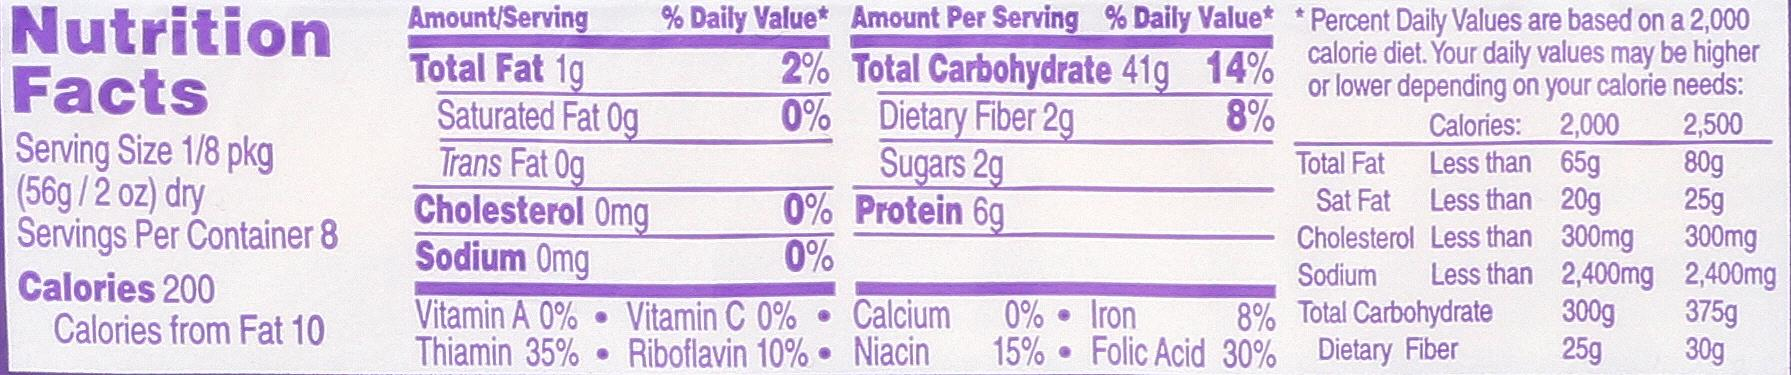 DaVinci Spaghetti nutrition label